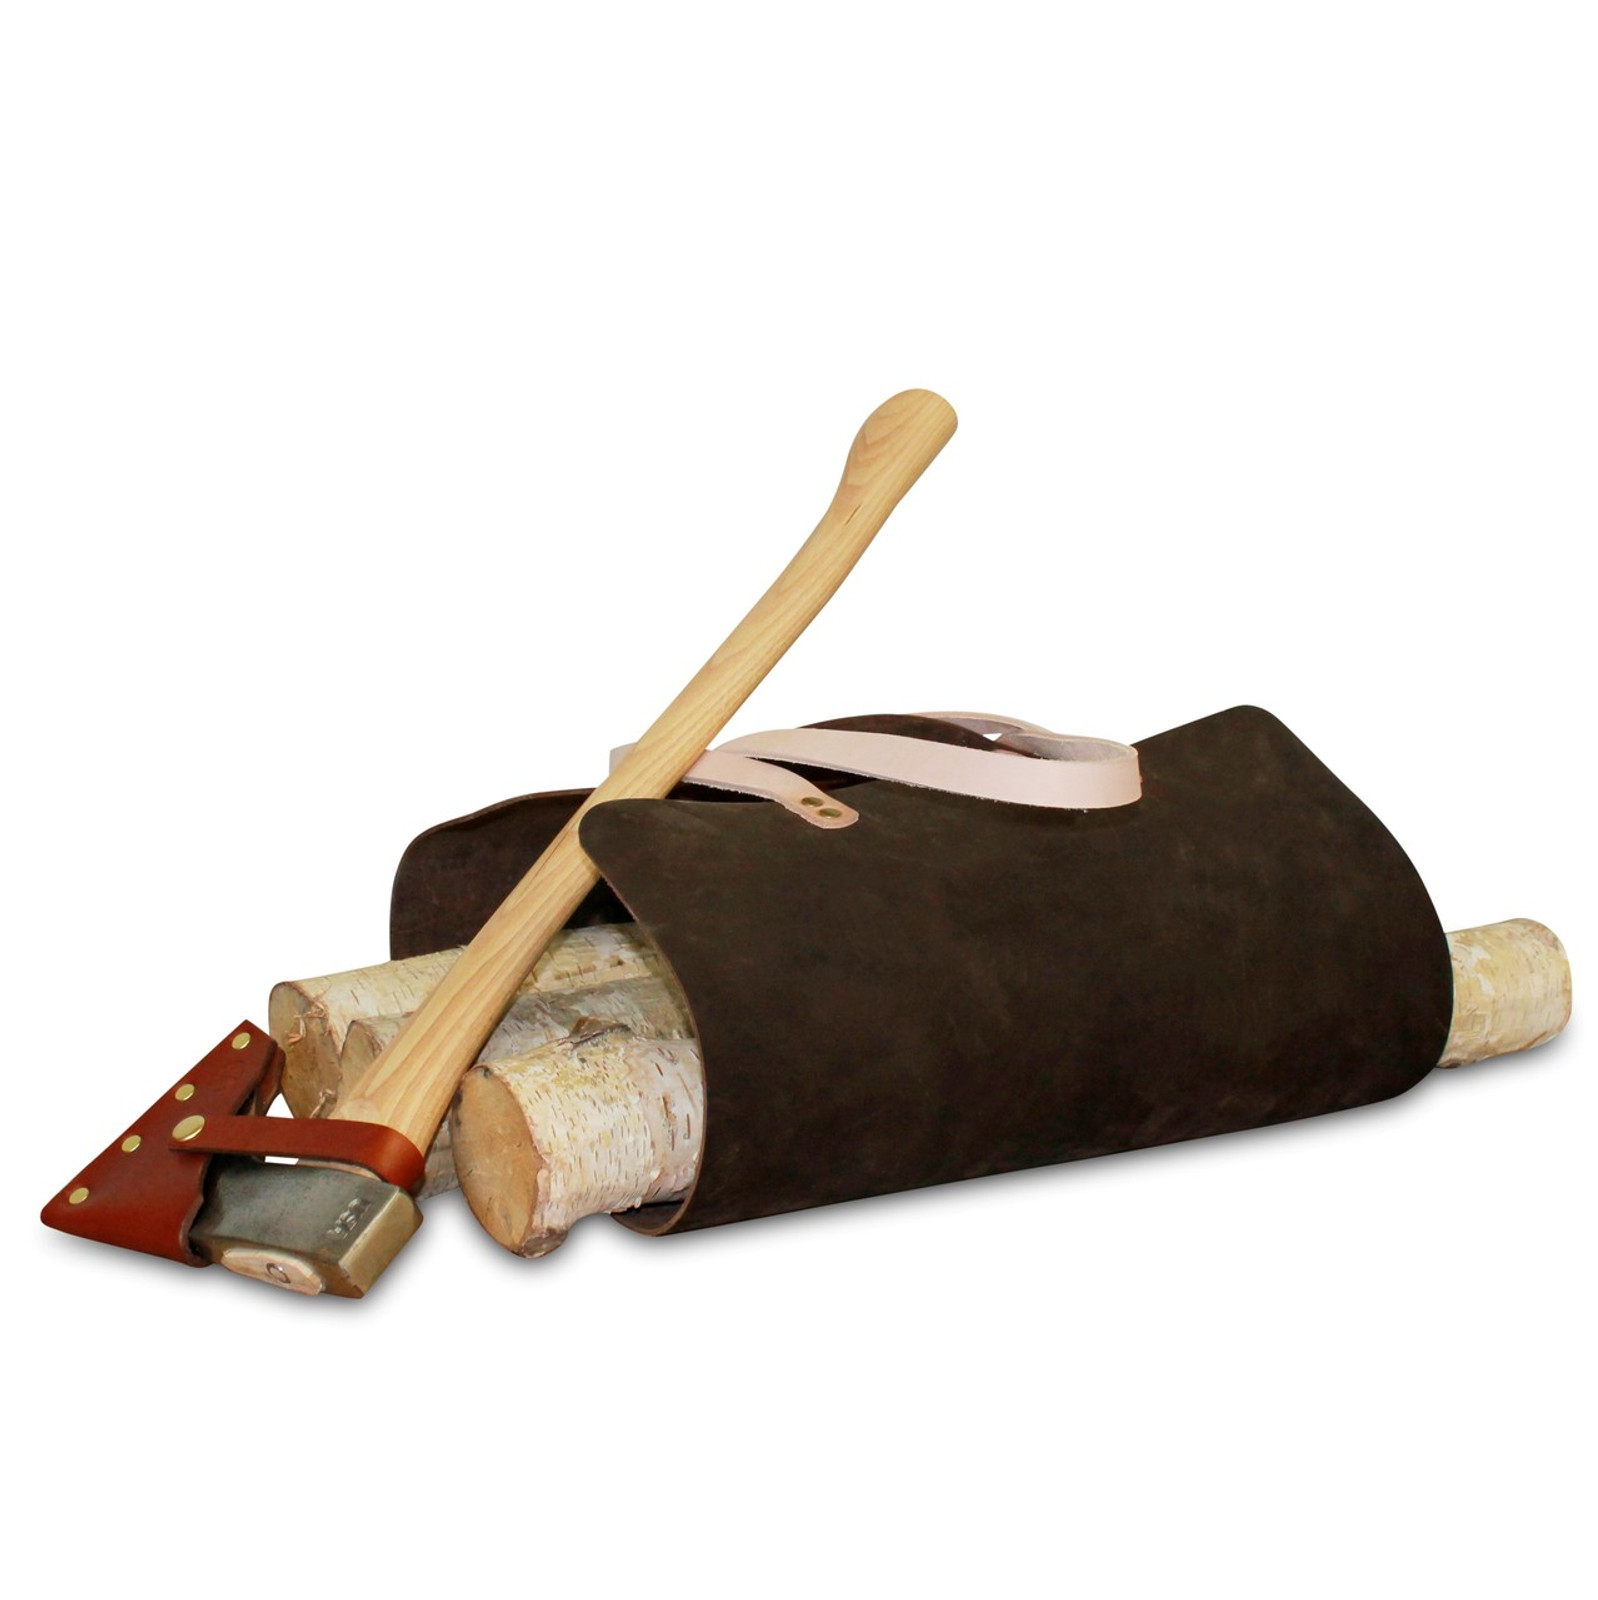 firewood carrying bag, leather bag, durable, rugged, hammer riveted, made in usa, American Bench Craft, gifts for men